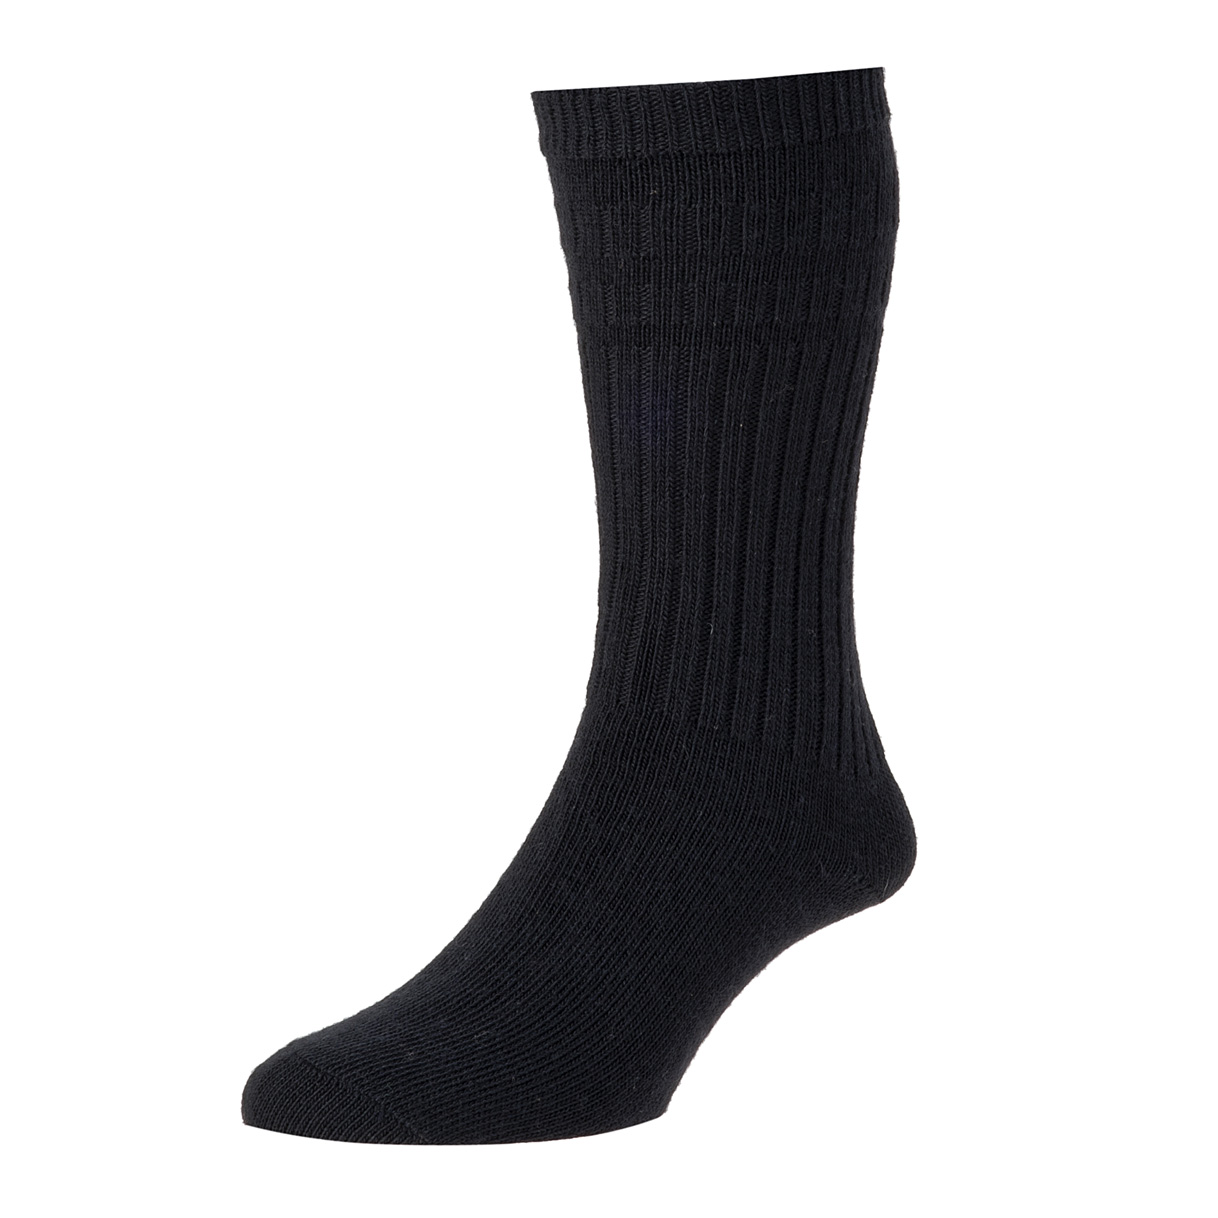 HJ Hall Softop Thermal Mens Socks size 11-13UK Black HJ95